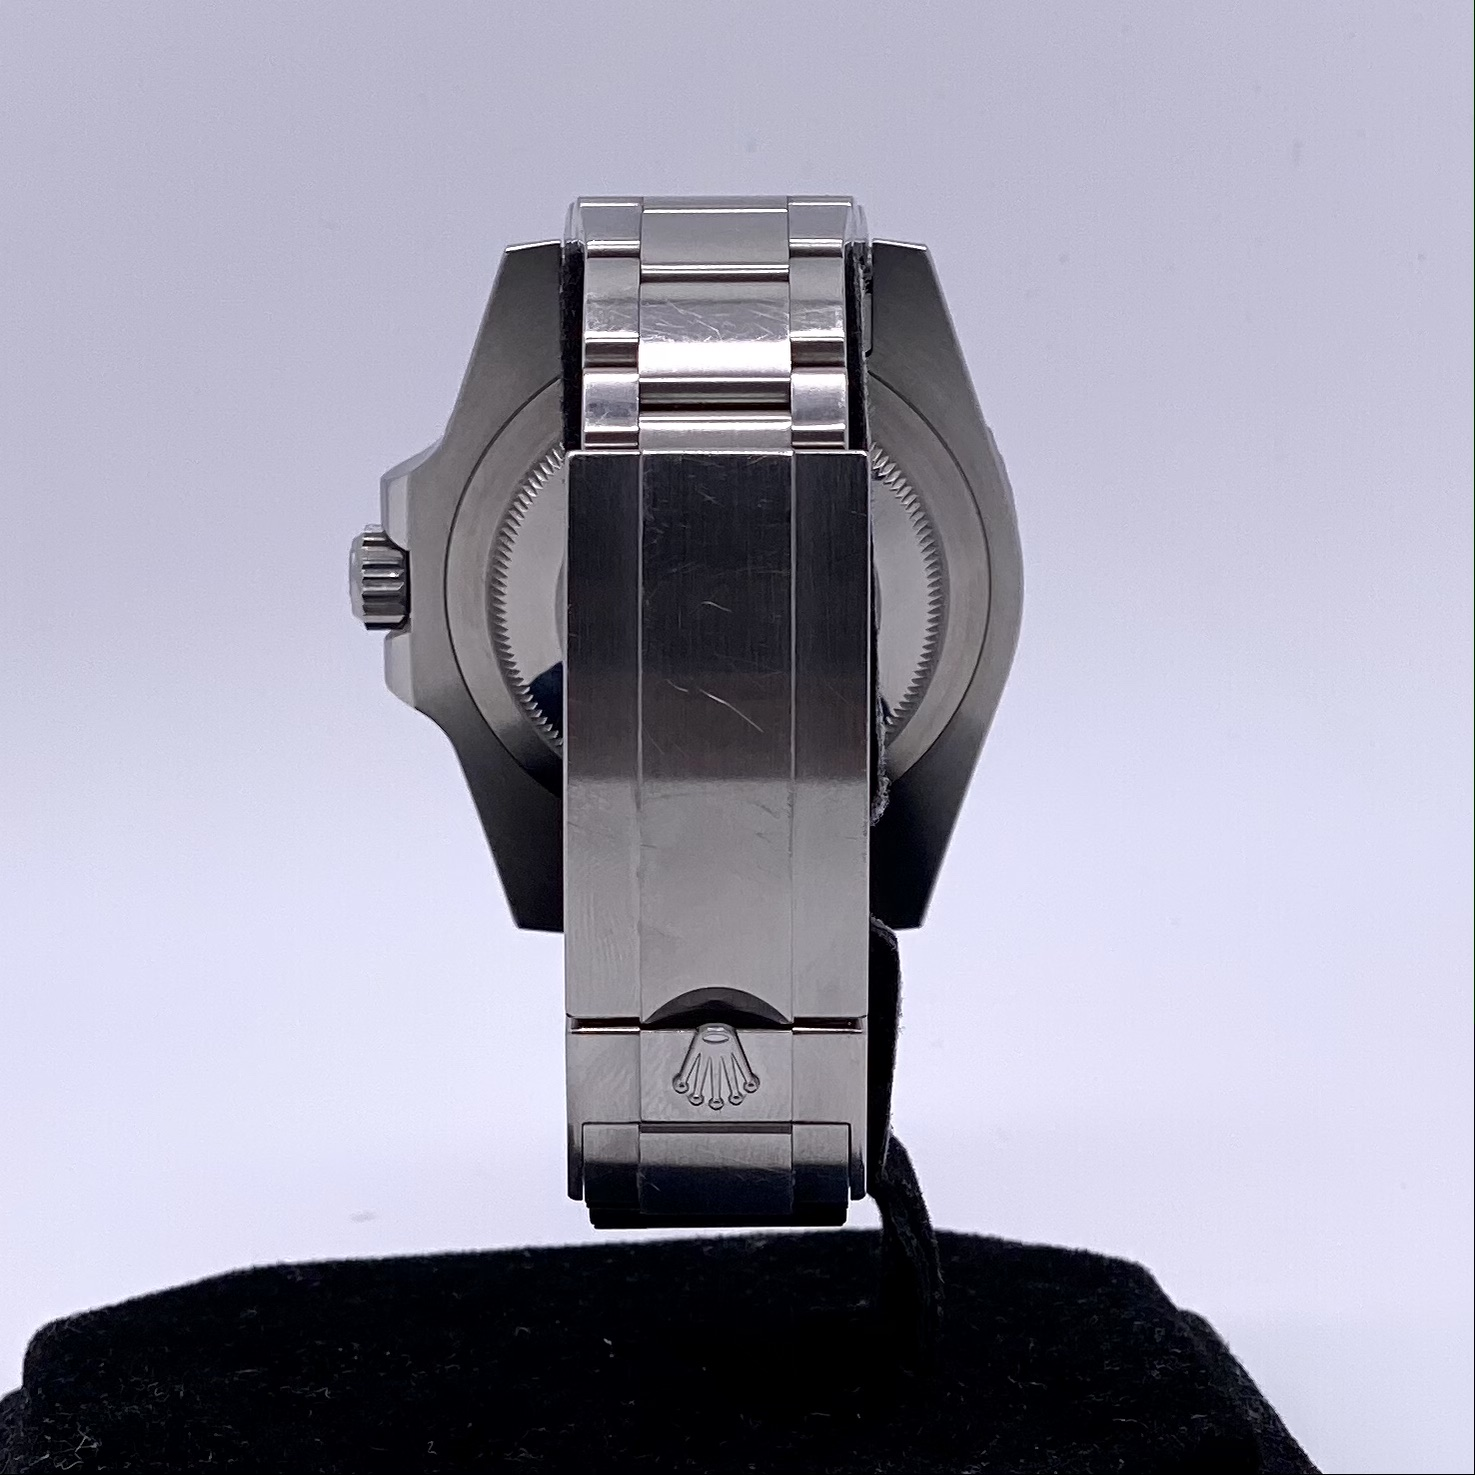 Rolex Submariner 114060 Box and Papers 2019 - Image 3 of 4